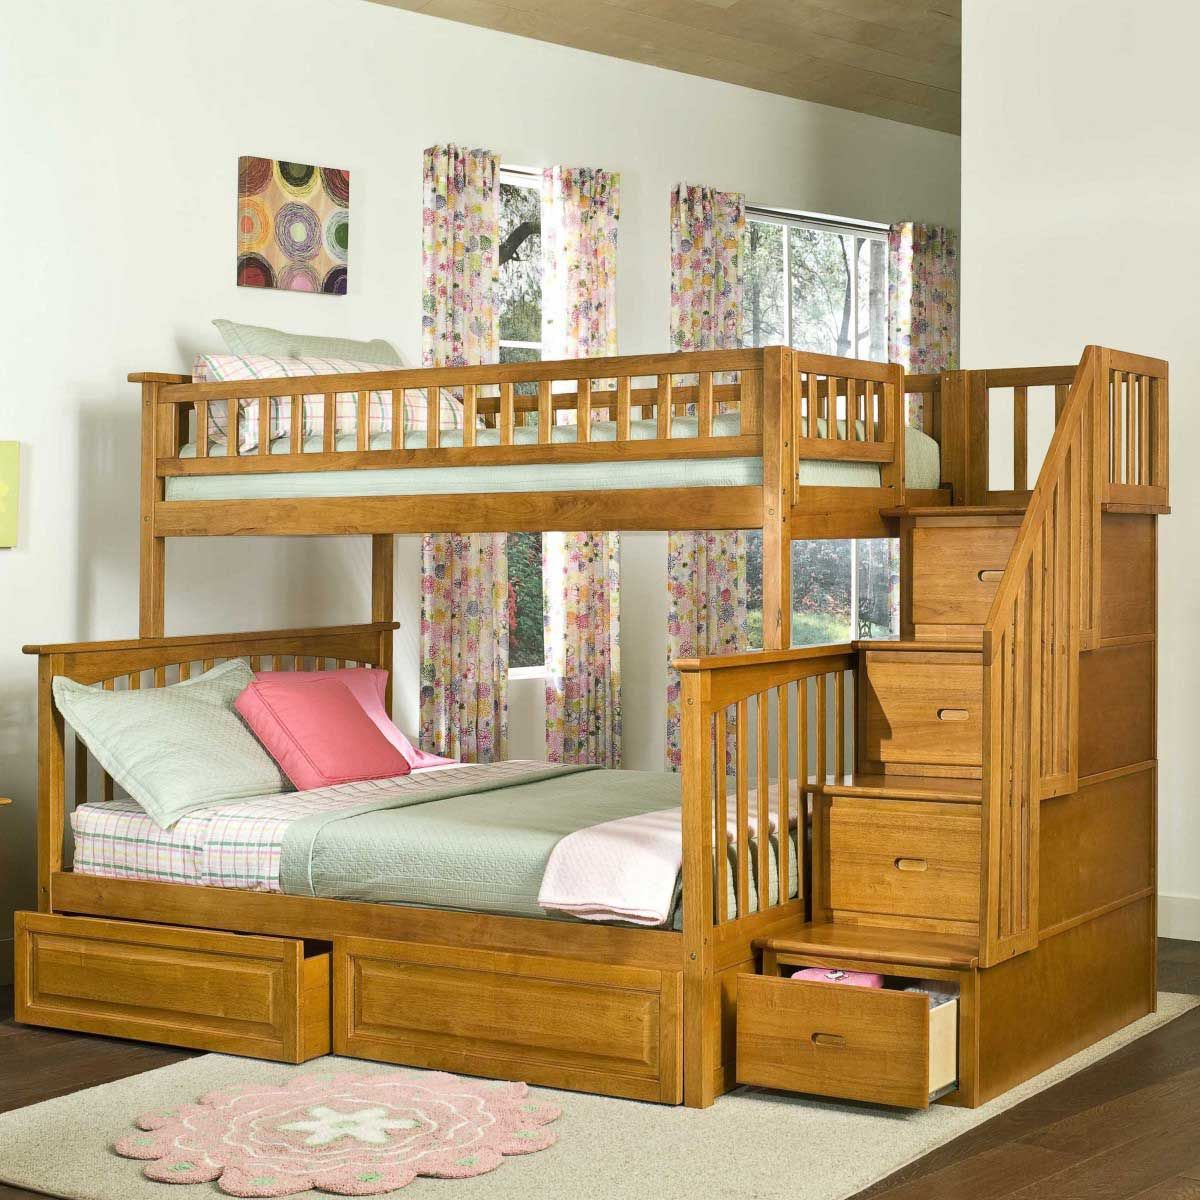 Teen Room Designs Cool Space Saving Storage System For